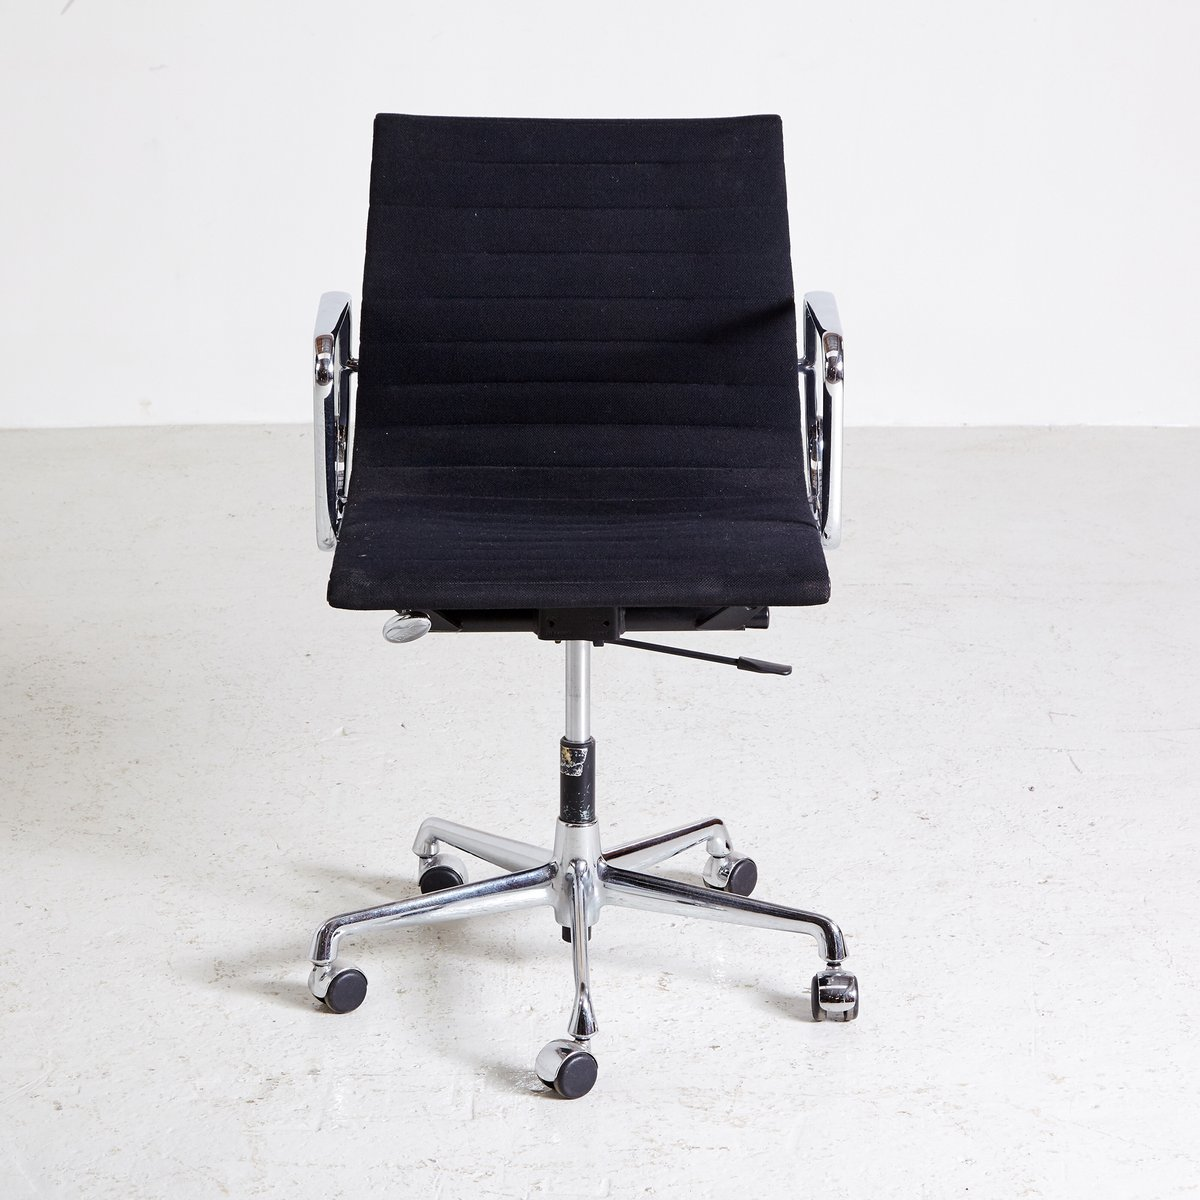 Vitra Office Chair Ea 107 Swivel Office Chair By Charles Ray Eames For Vitra 1958